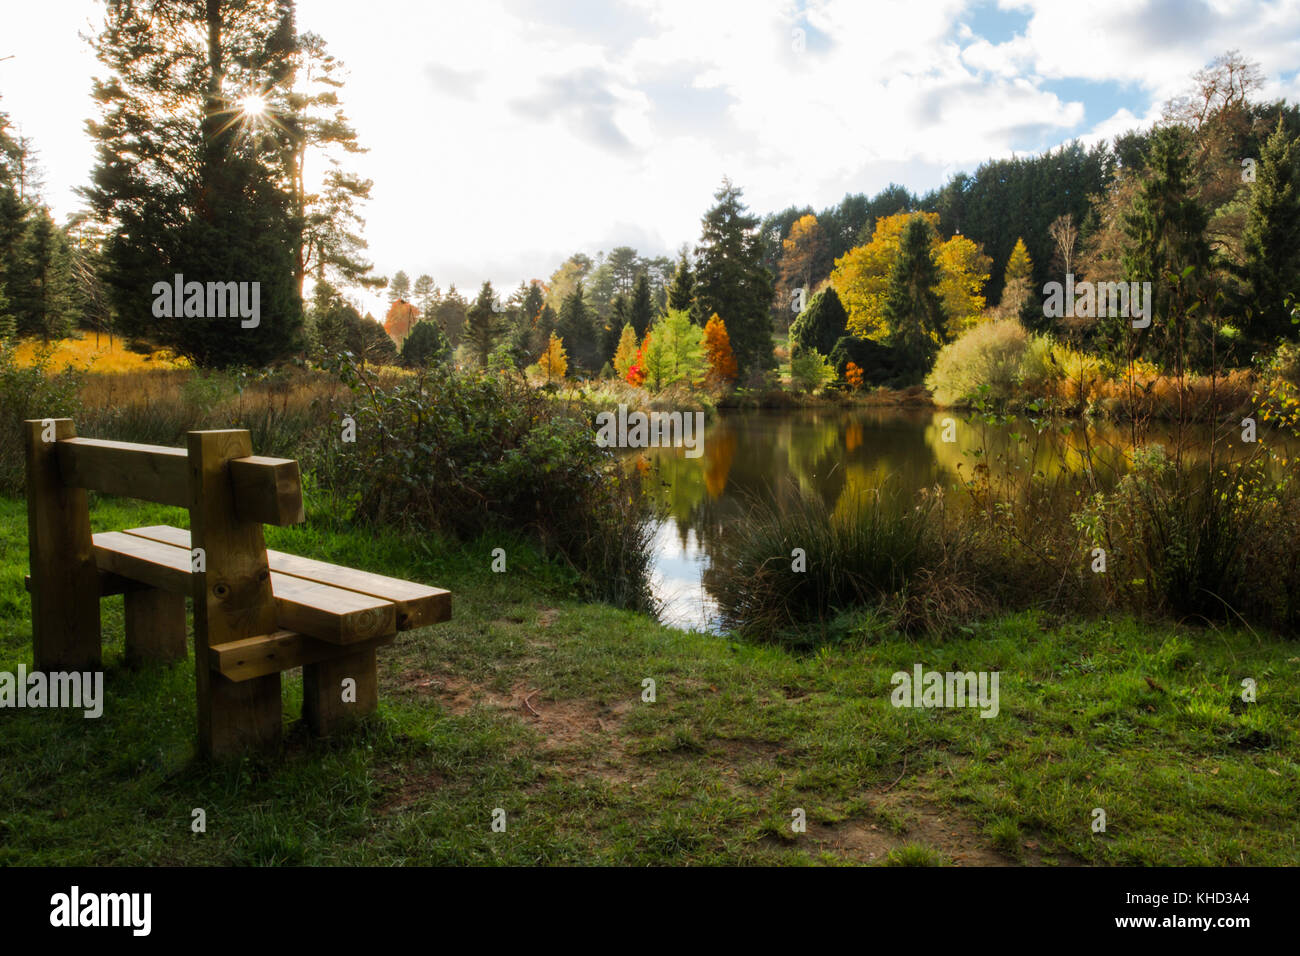 Bedgebury Pinetum & Forest in November, Autumn. Tourist attraction on outskirts of Tunbridge Wells / Goudhurst. - Stock Image